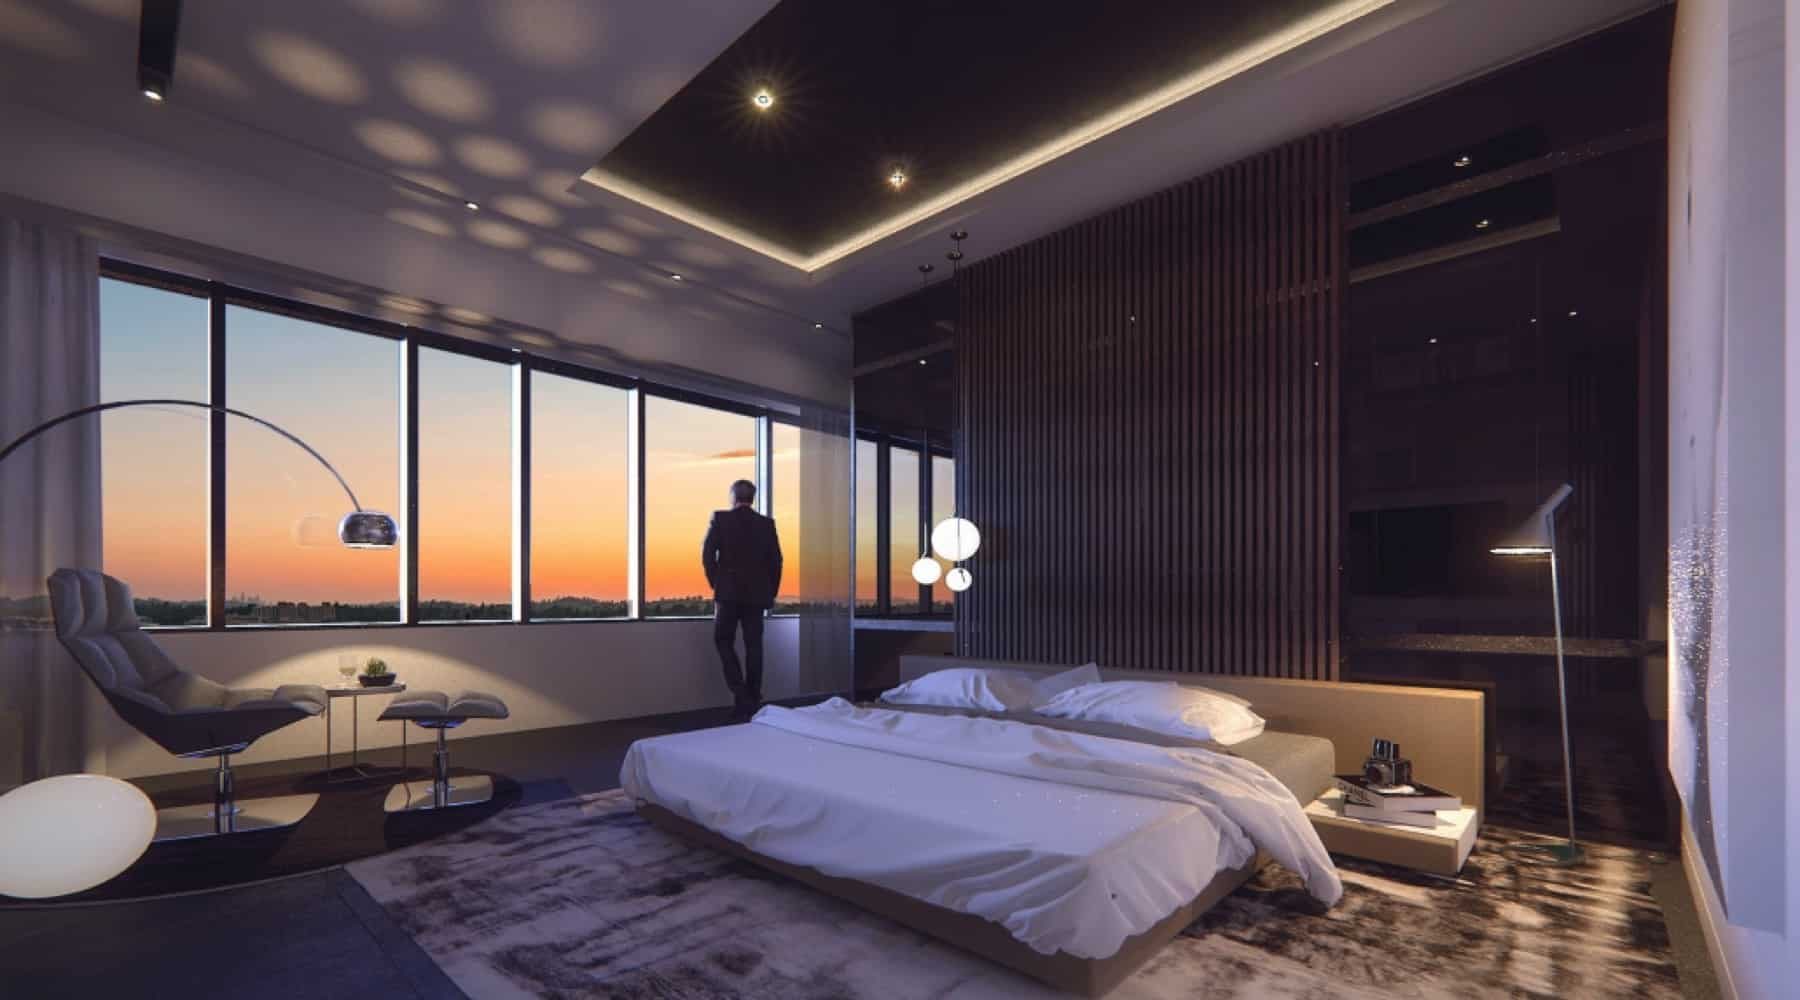 Penthouse_2_Rendering_Bedroom_Evening